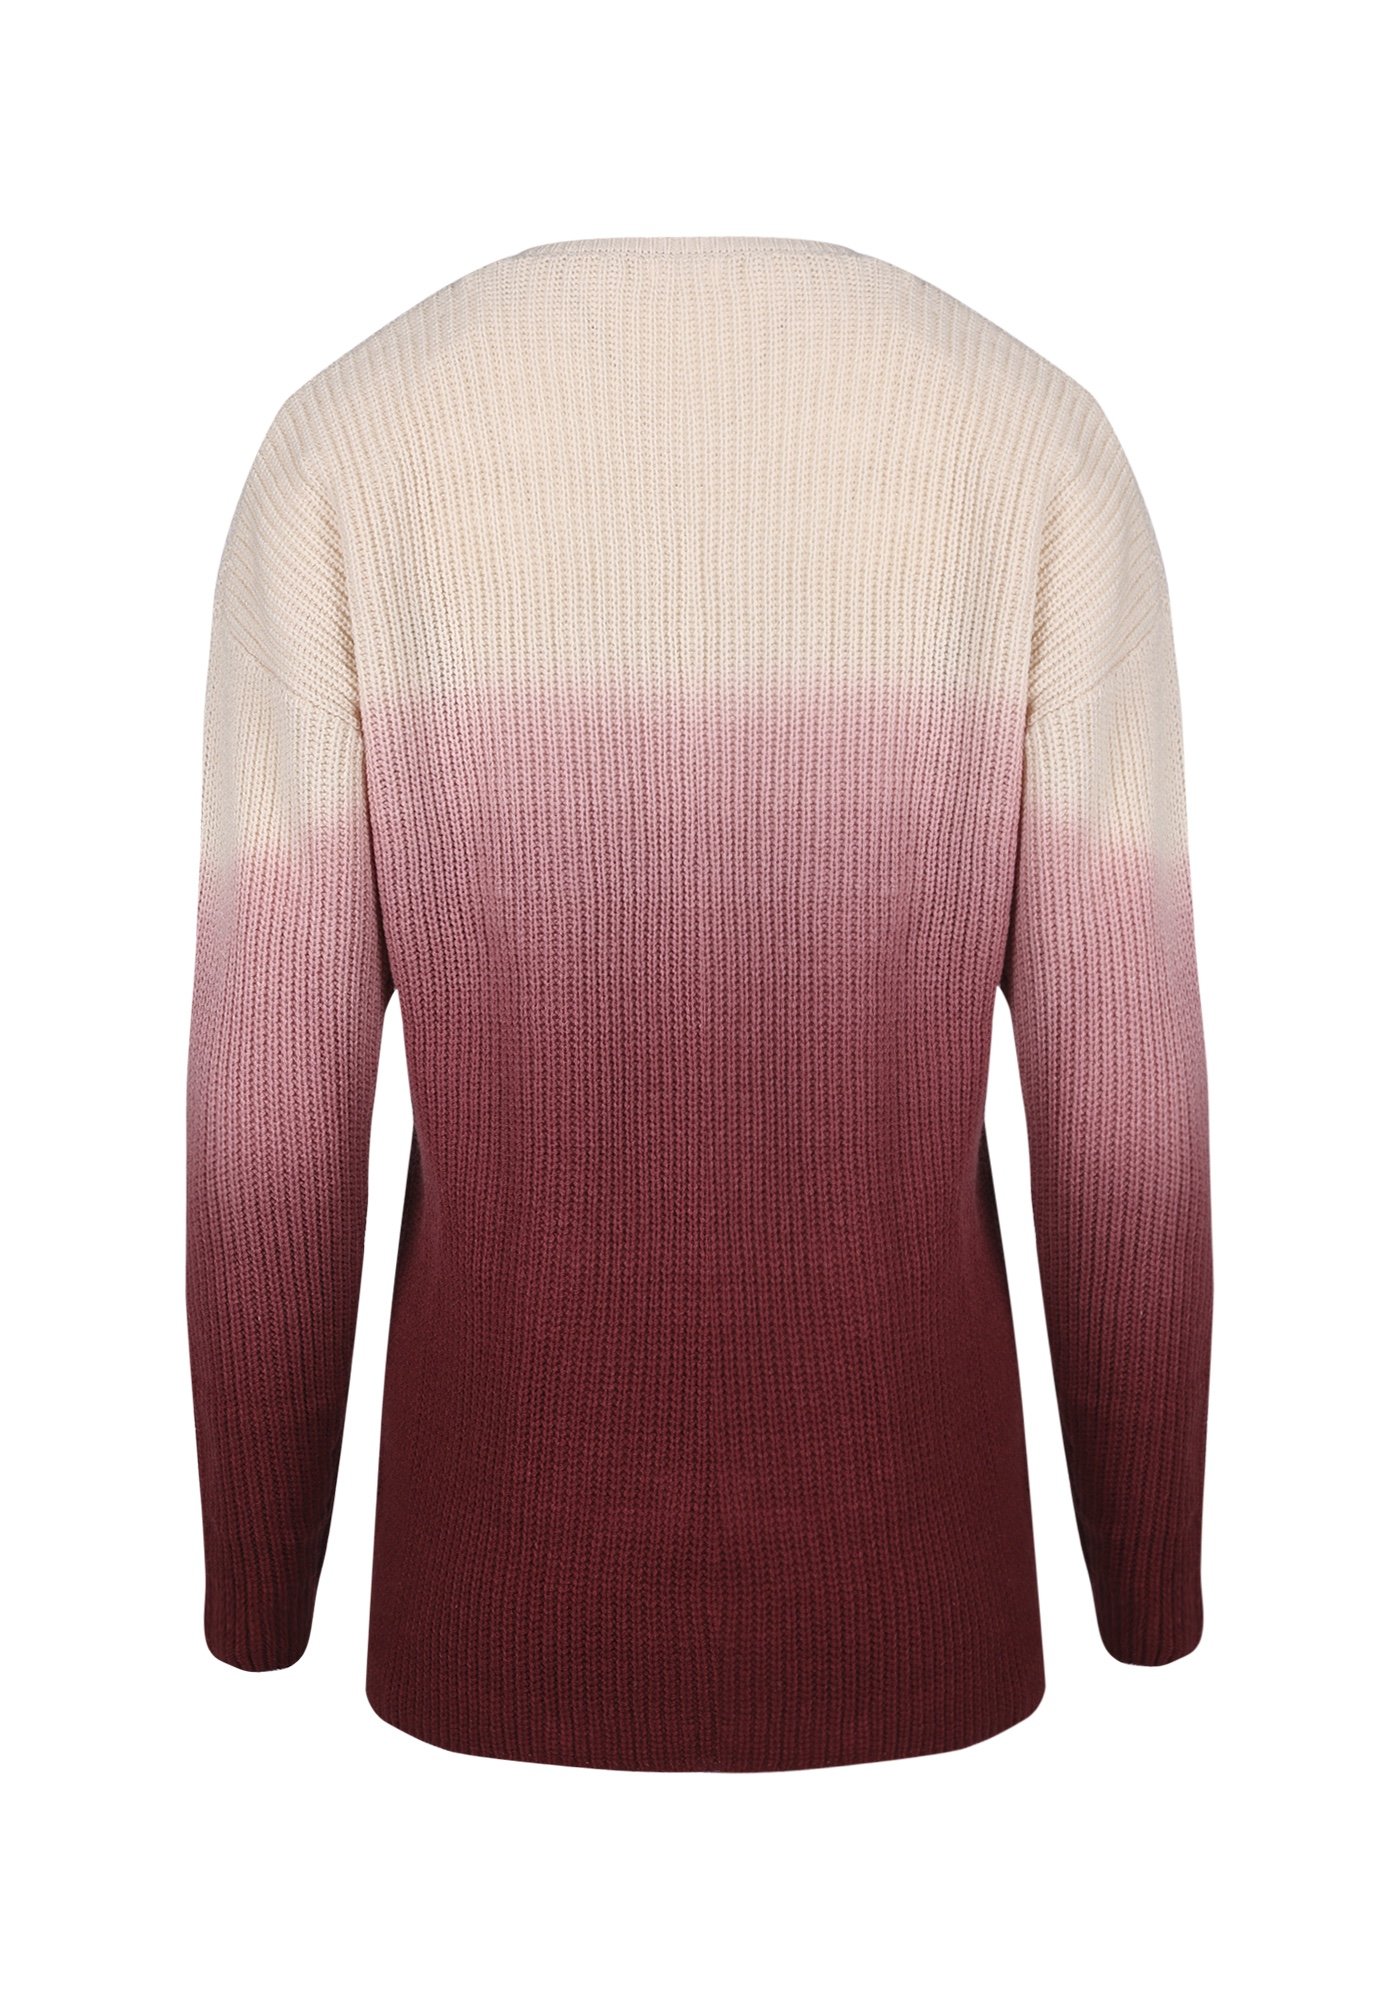 ebece36ef0 ... Womens Ombre Sweater